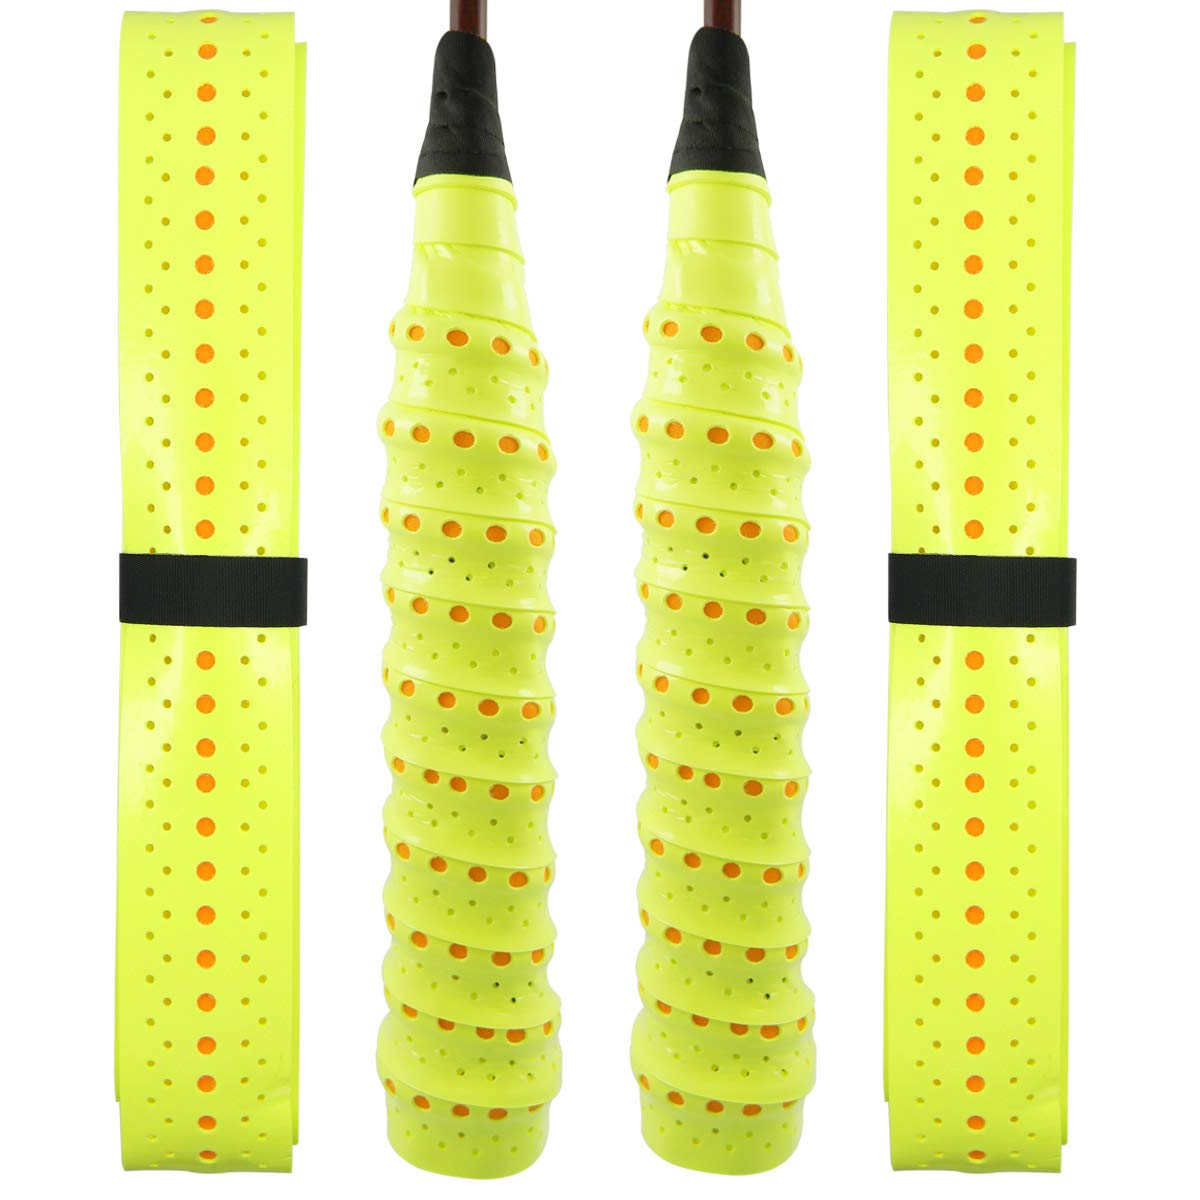 Quality Yes QY 2Pack Widened Perforated Super Absorbent Tennis Racket Overgrip Anti Slip Badminton Racket Tape Wrap Table Tennis Racket Tape (Two-Tone Fluorescent Yellow)